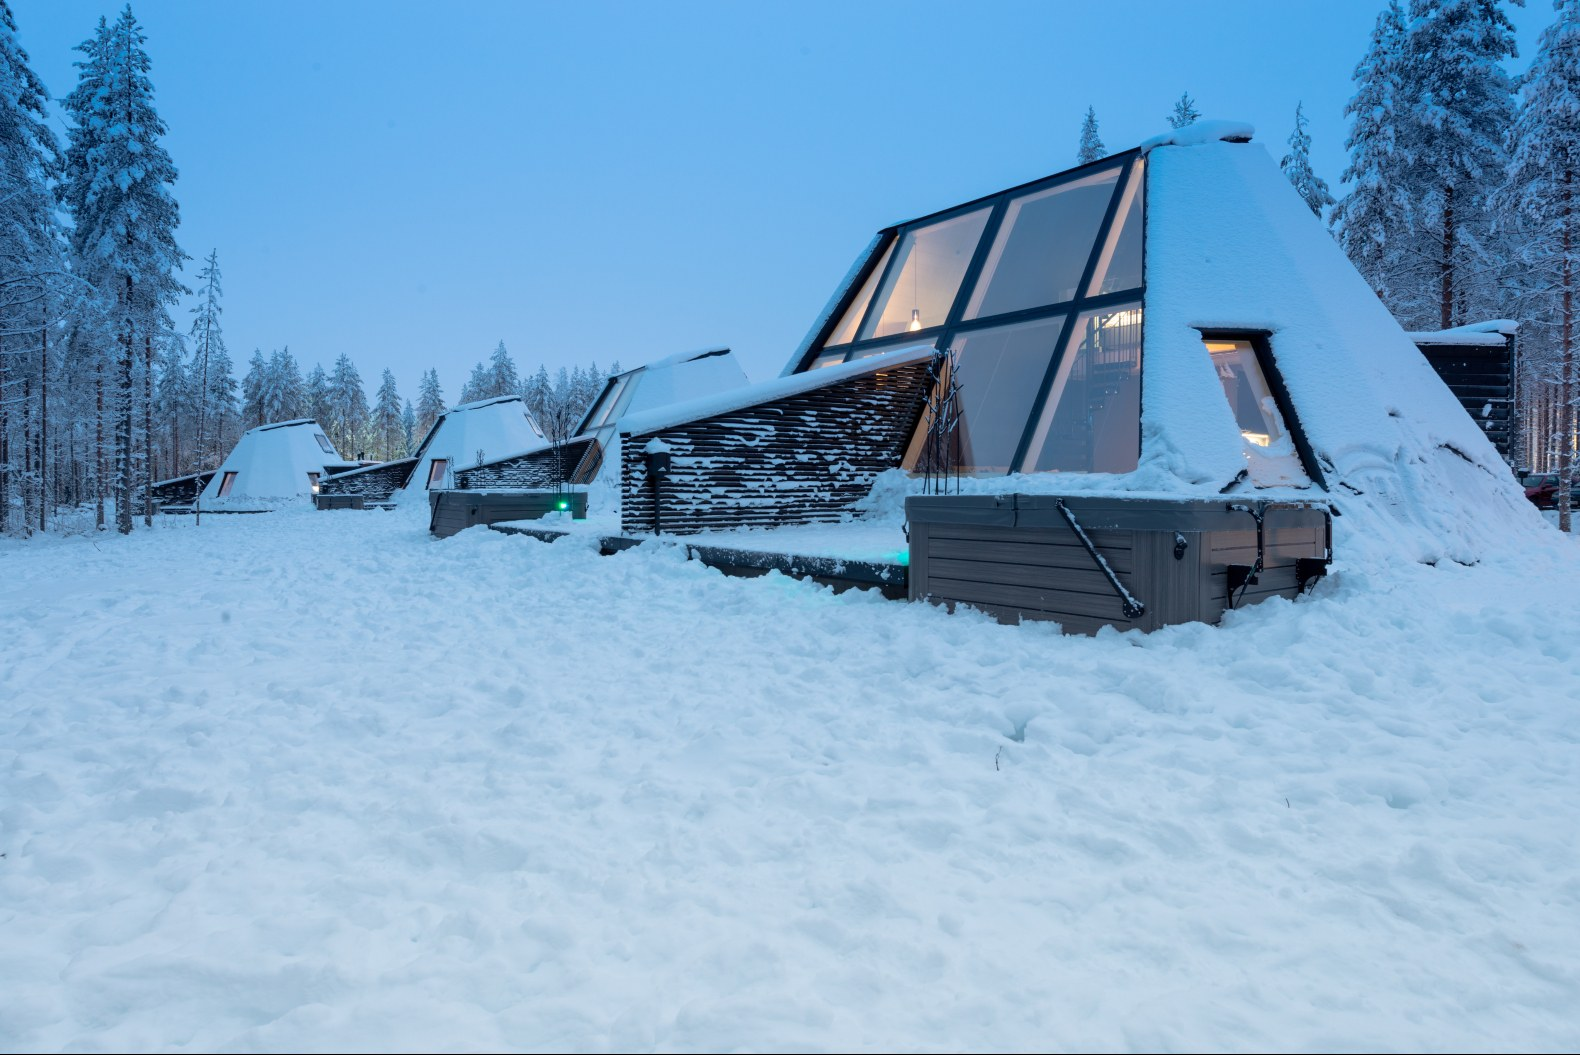 Отель Glass Resort в Лапландии, Финляндия от студии VOID Architecture, HQ architecture, HQarch, HQ arch, high quality architecture